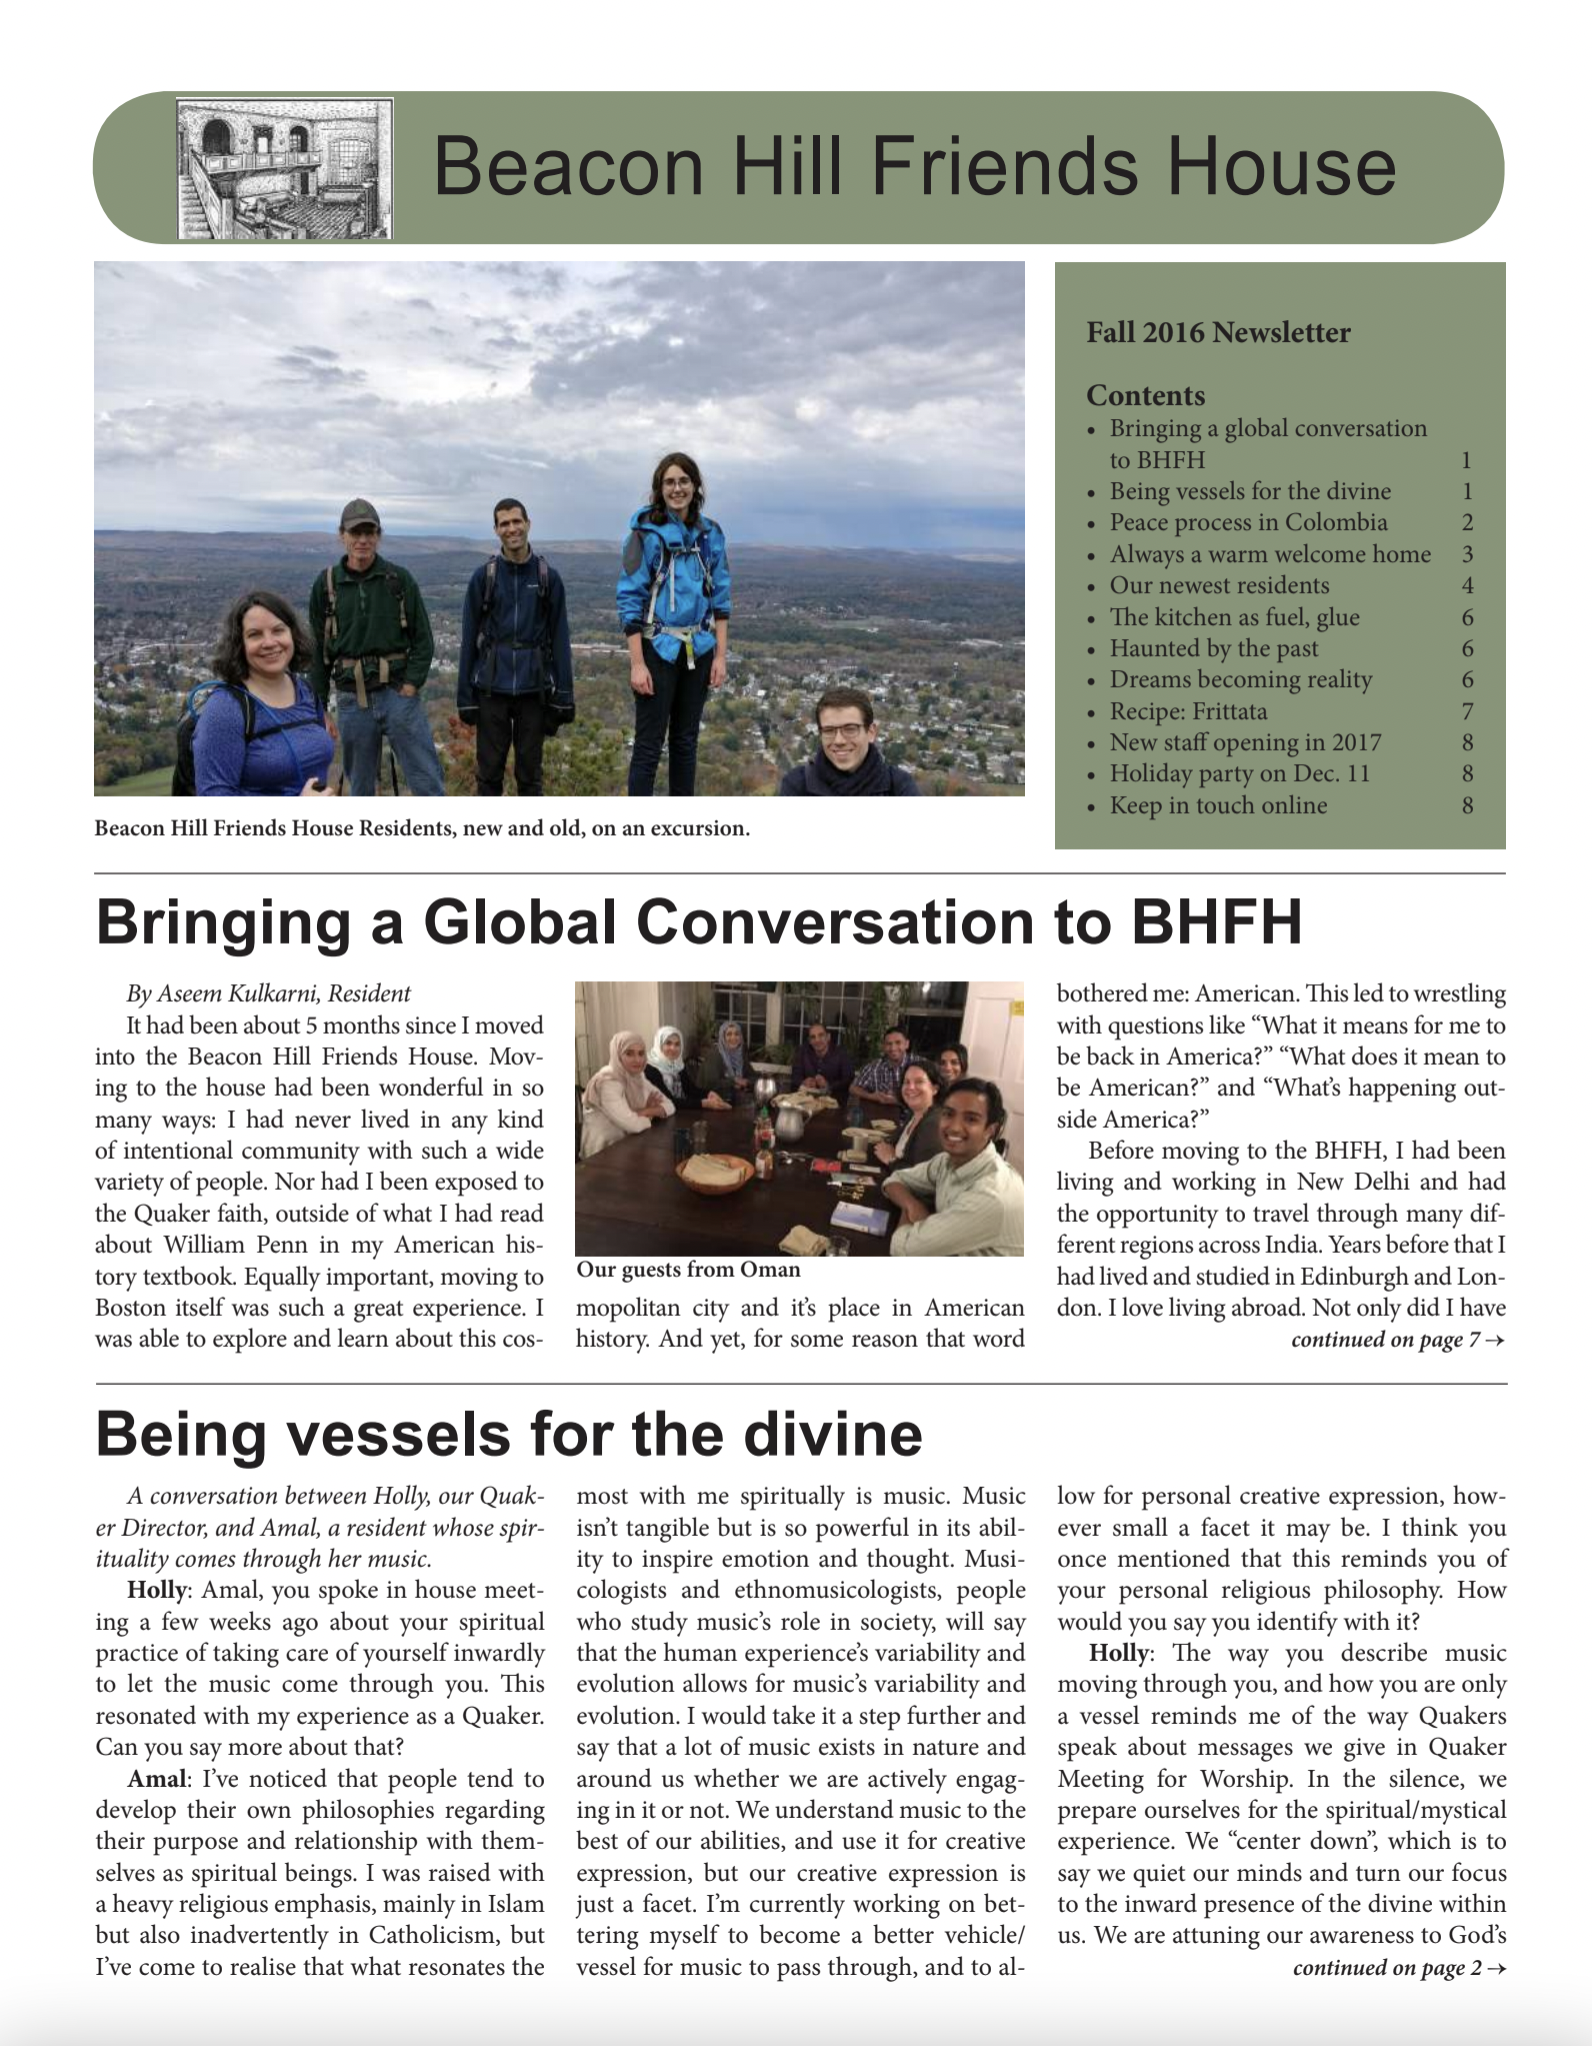 First page of fall/winter 2016 newsletter